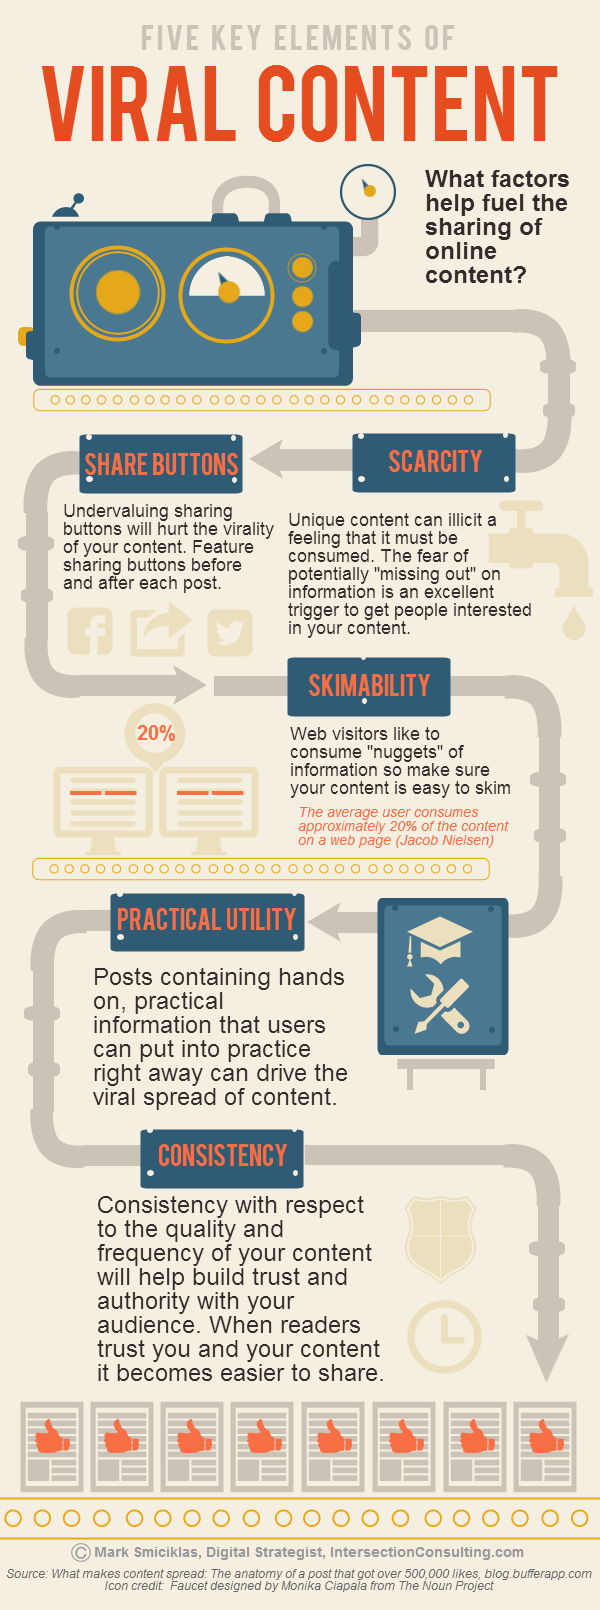 5 Key Elements of Viral Content infographic